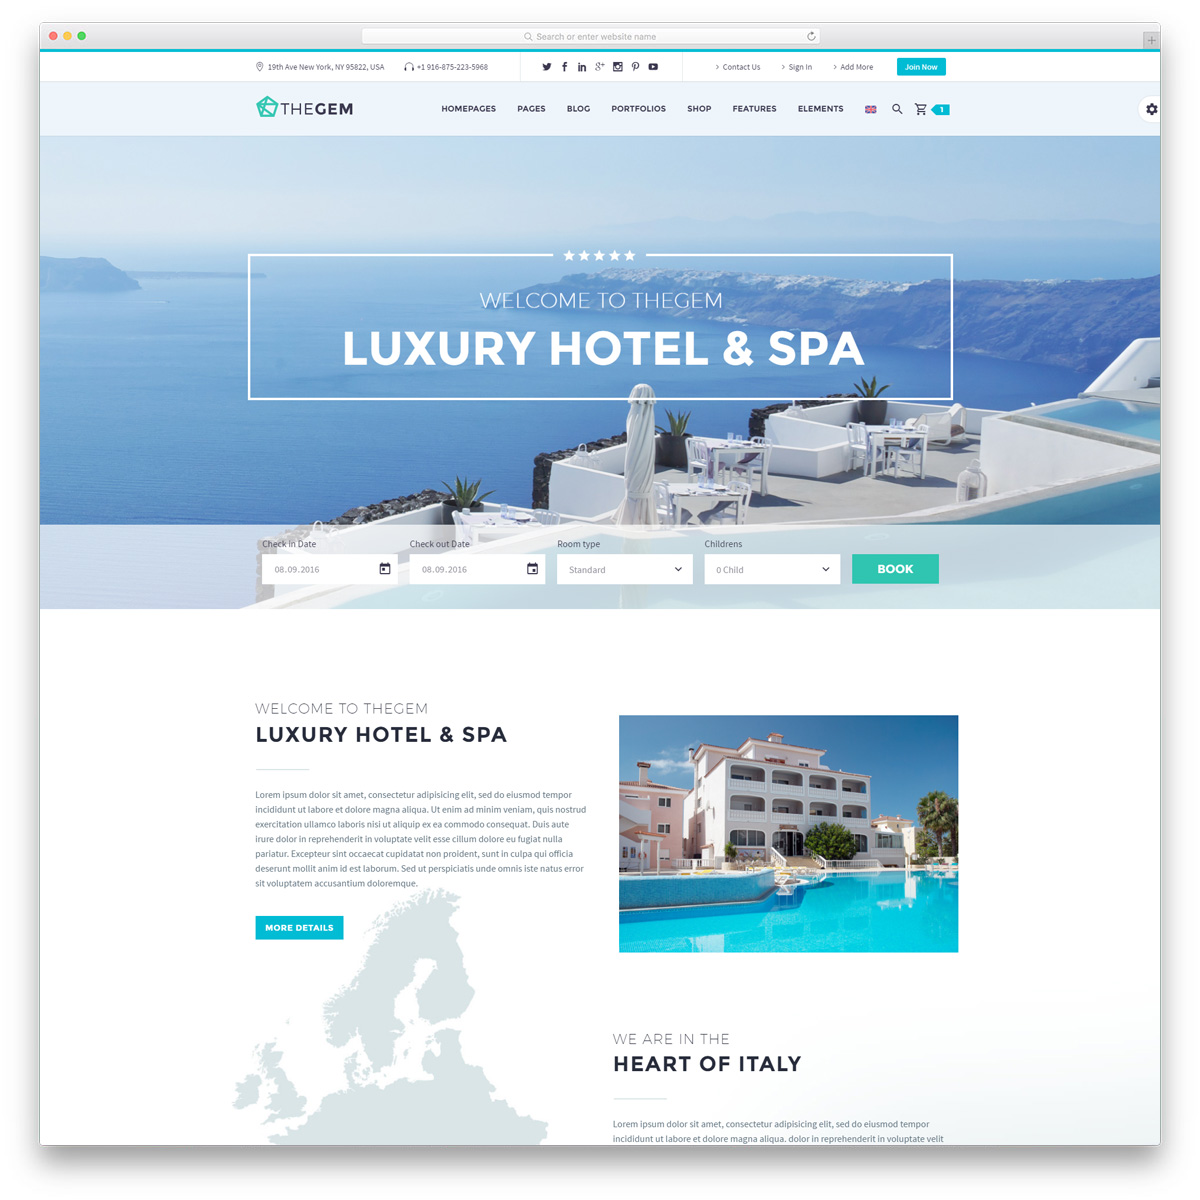 dating sites business plan Ezinearticles com allows expert a digital marketing plan jon kreps is a website optimization expert specializing in optimizing on-site content, traffic.